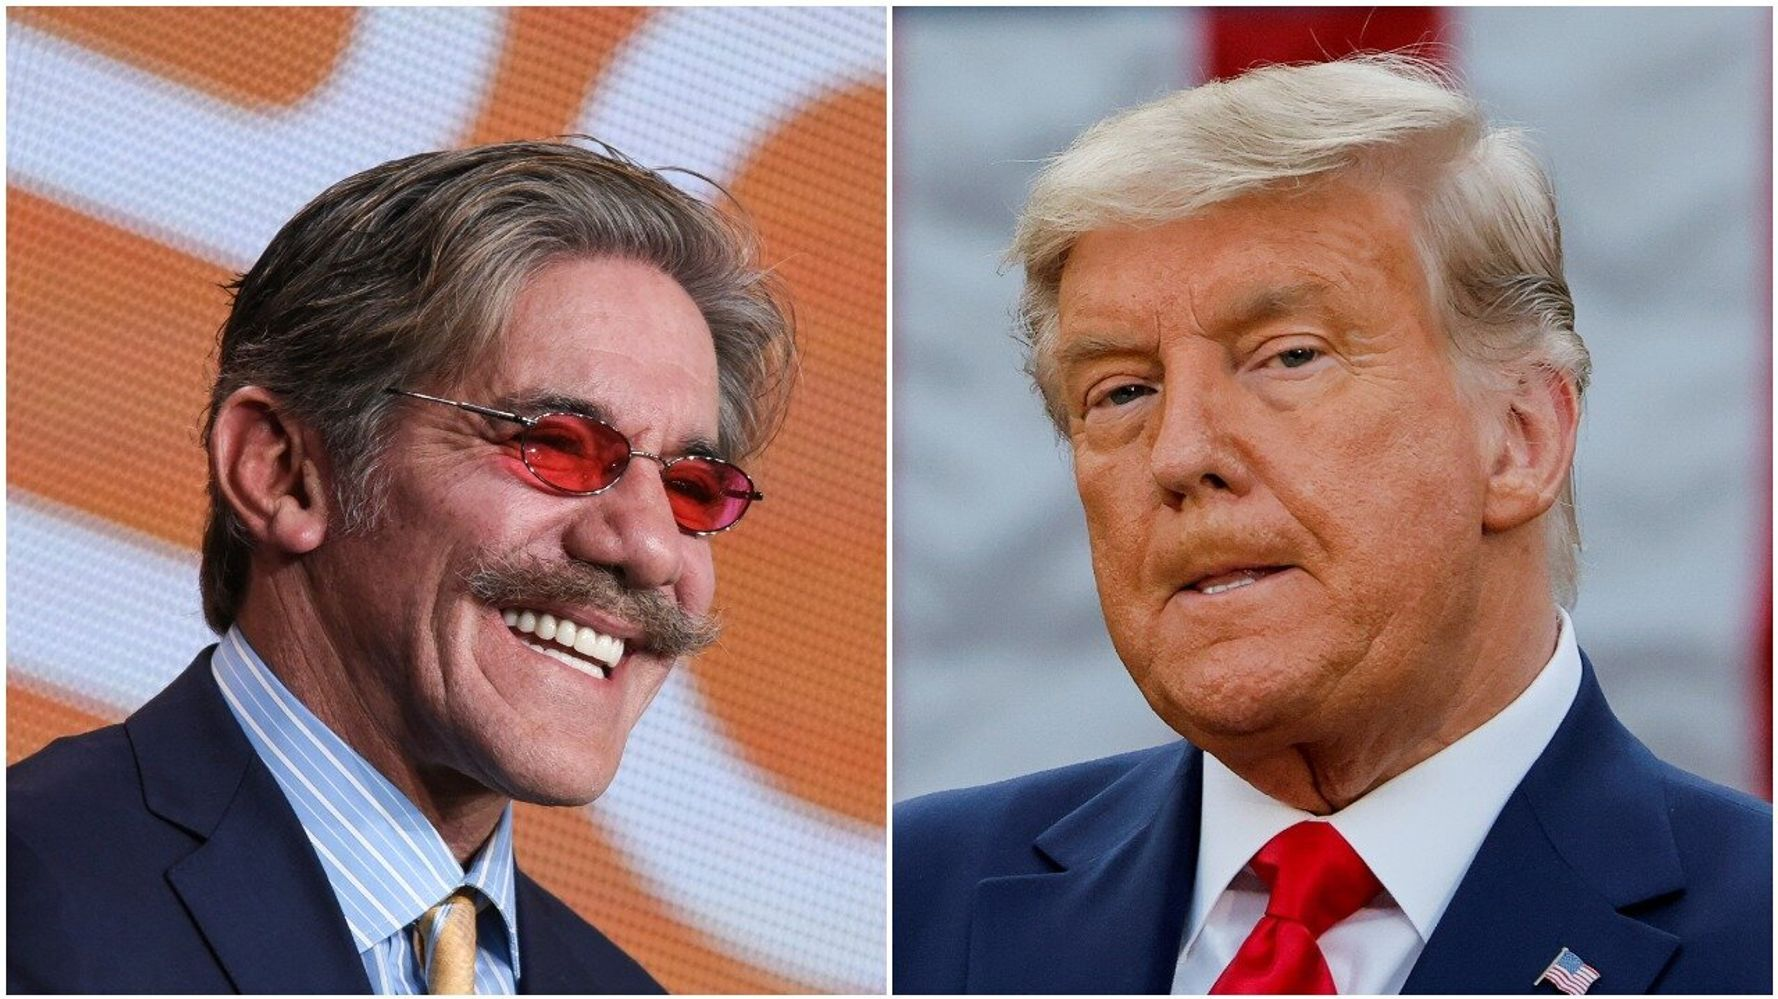 Geraldo Rivera Wants To Soothe Trump's Feelings By Naming Vaccine After Him